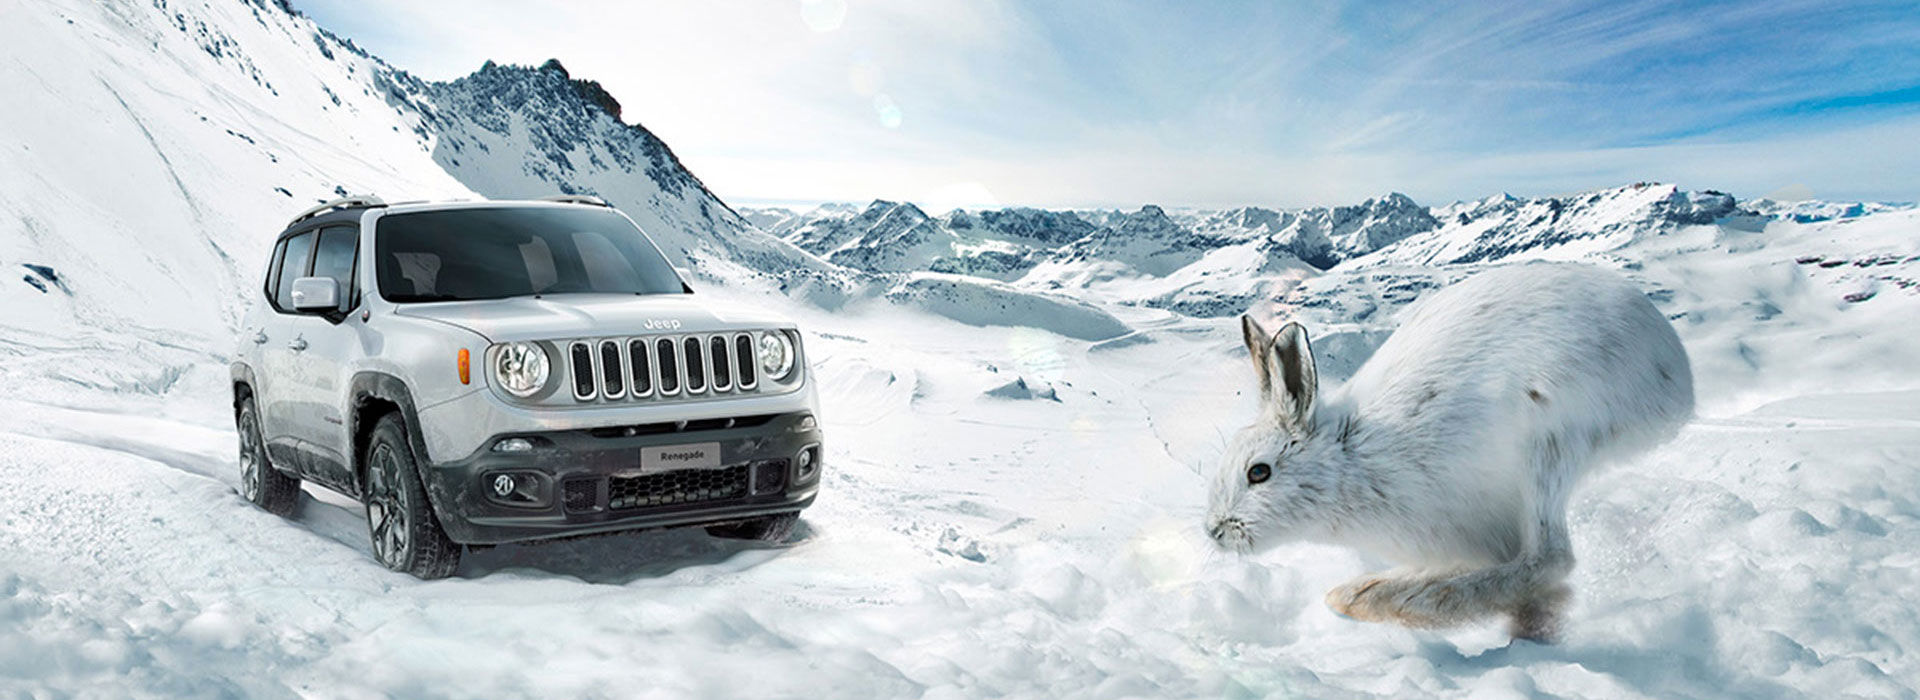 jeep-dominant-banner